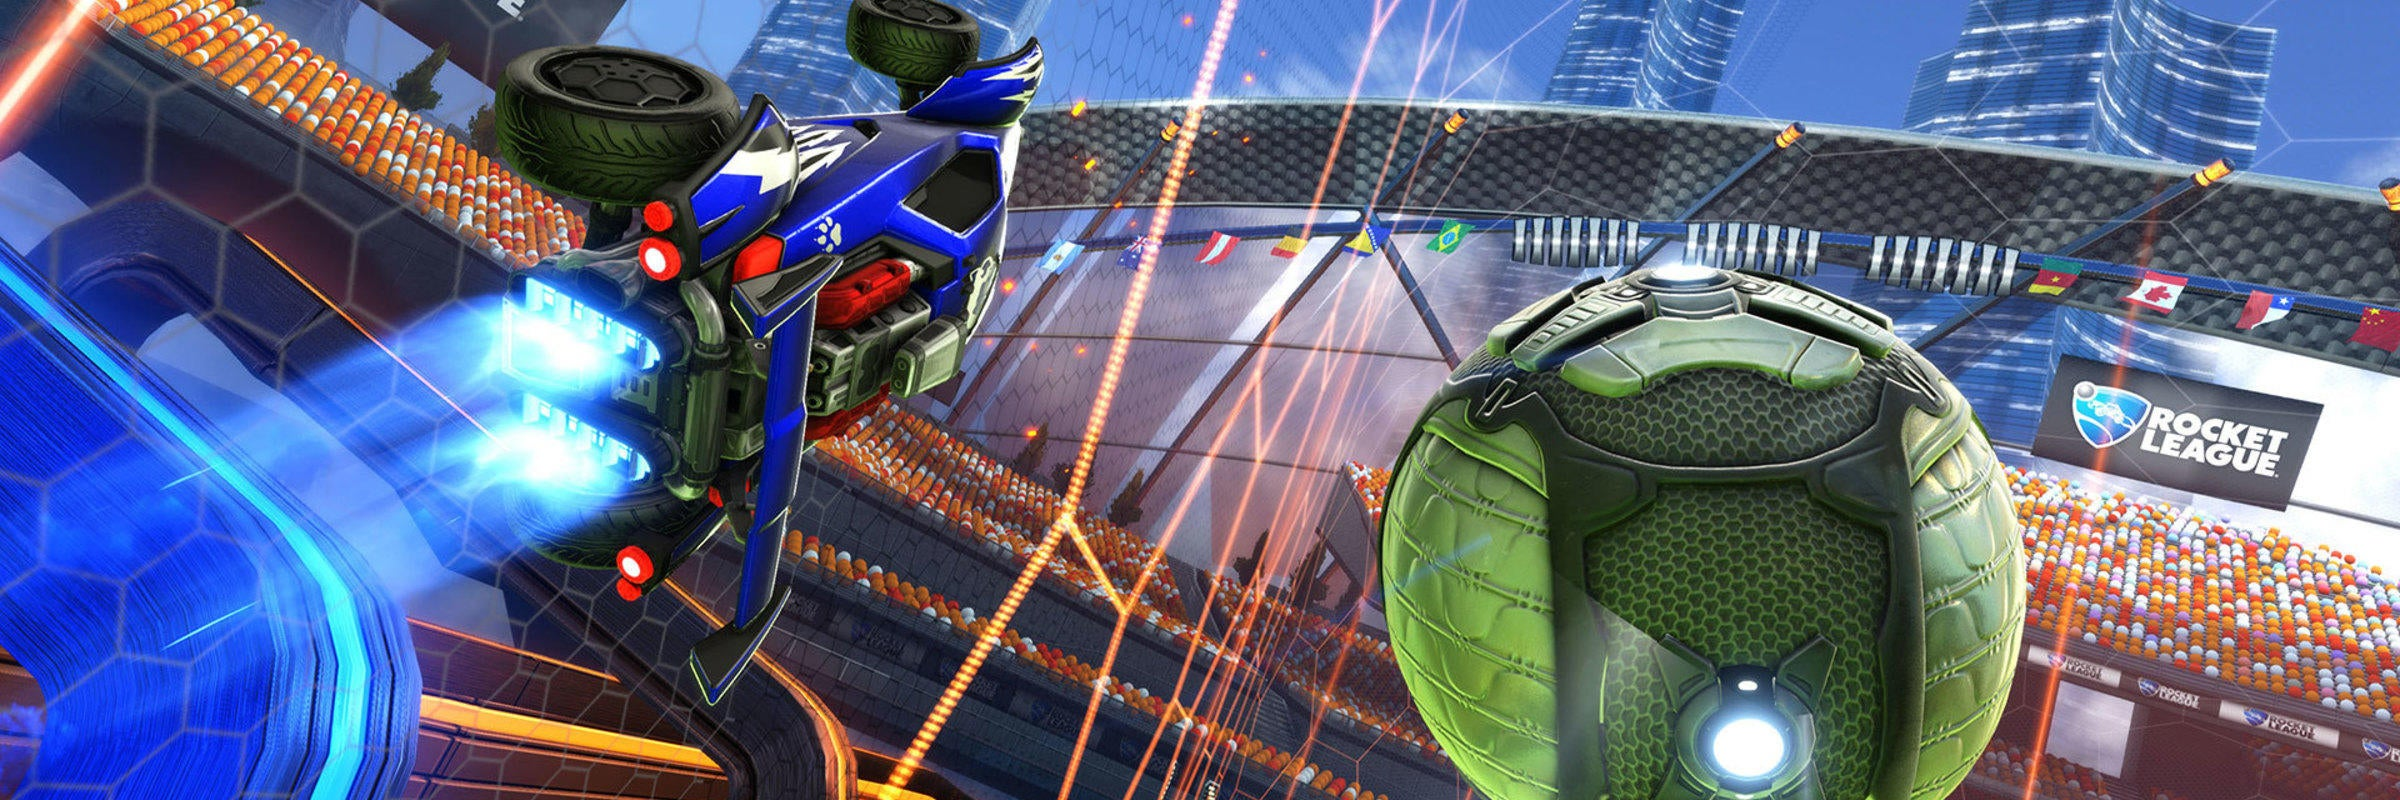 RLCS Regional Championships This Weekend Image